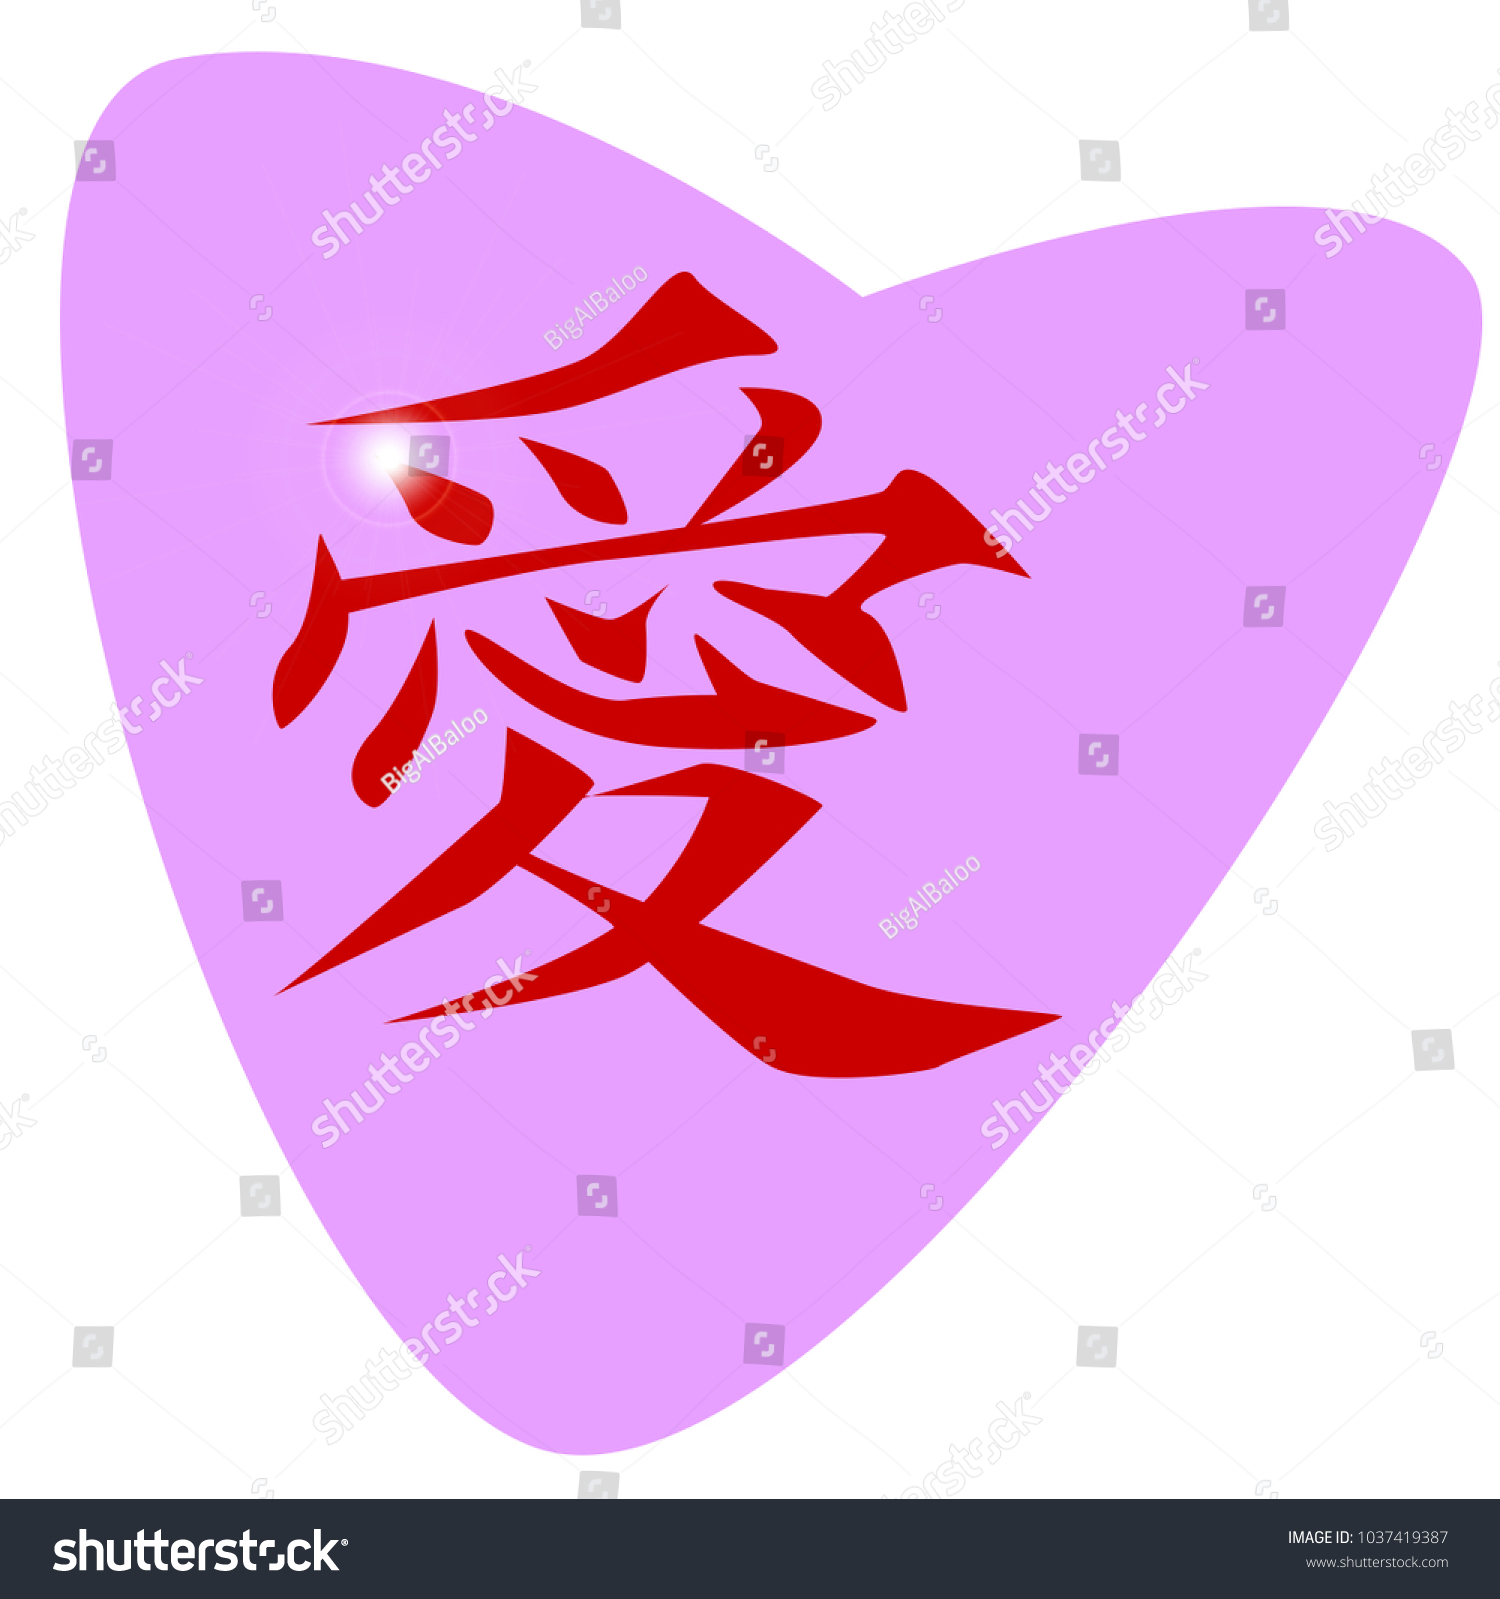 Chinese Symbol Love Heart Isolated Over Stock Illustration